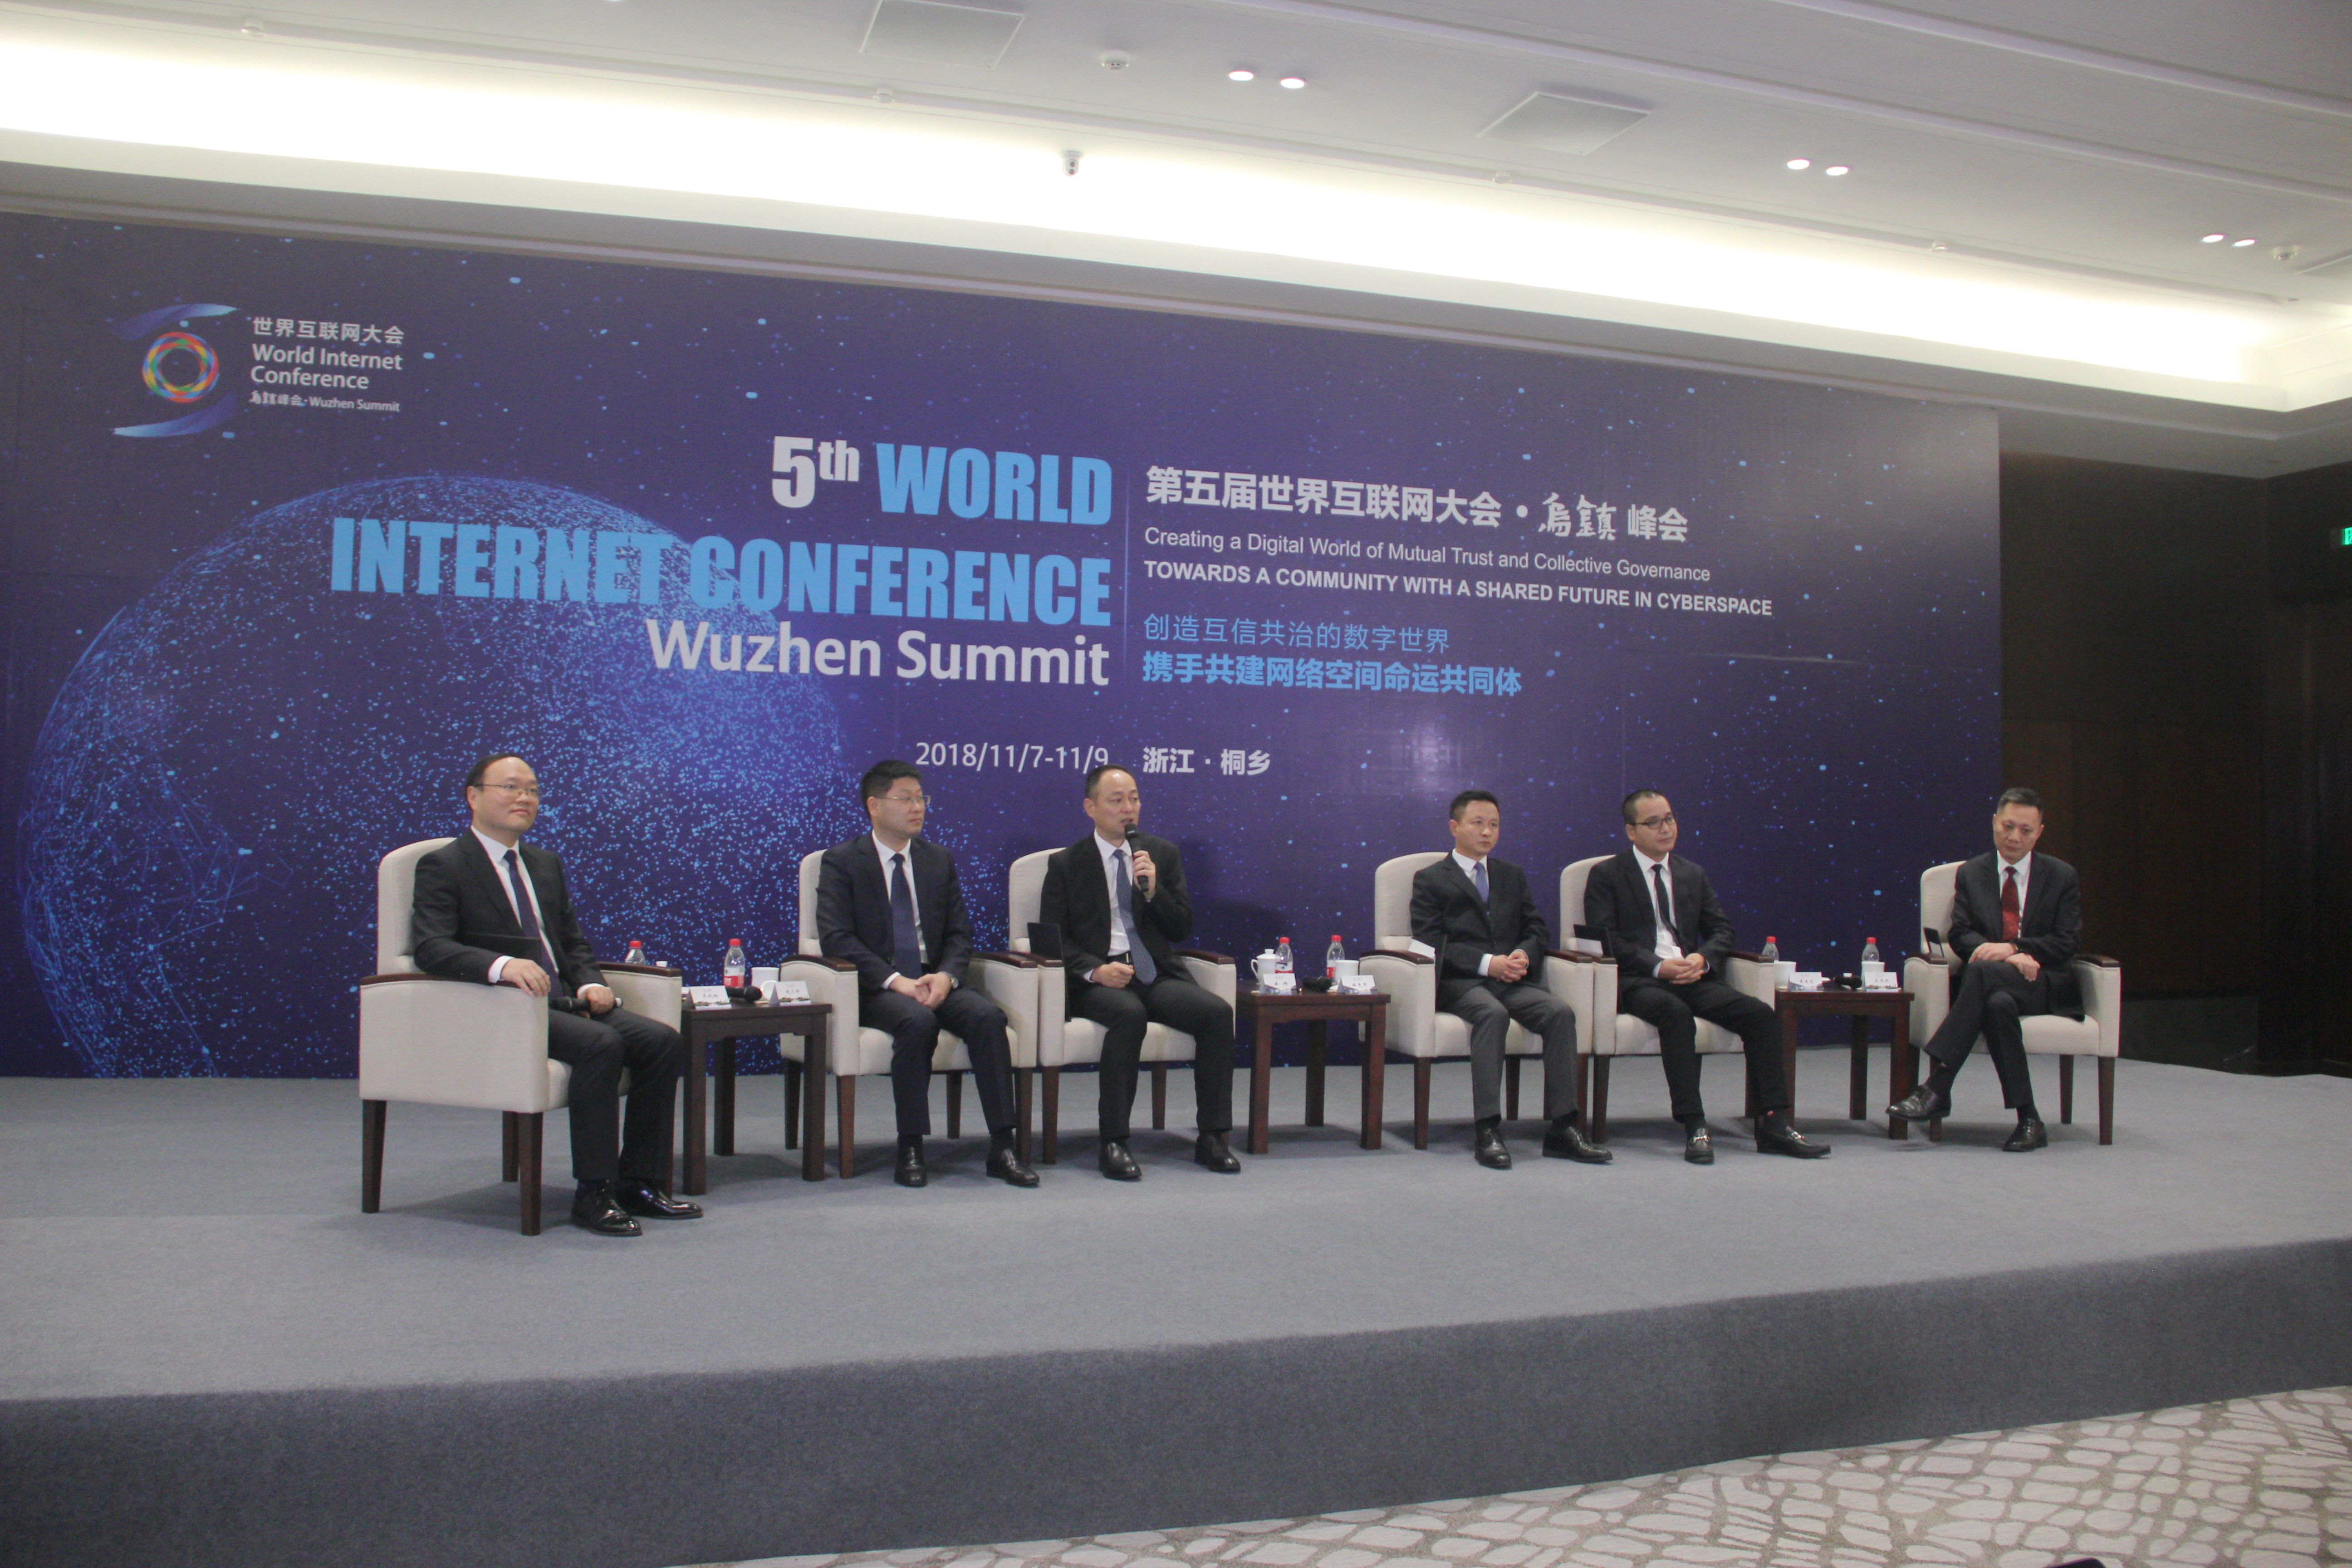 The fifth World Internet Conference (WIC) will be held this November in Wuzhen, a river town in east China's Zhejiang province. [Photo by Yu Tiantian/Xinhua]